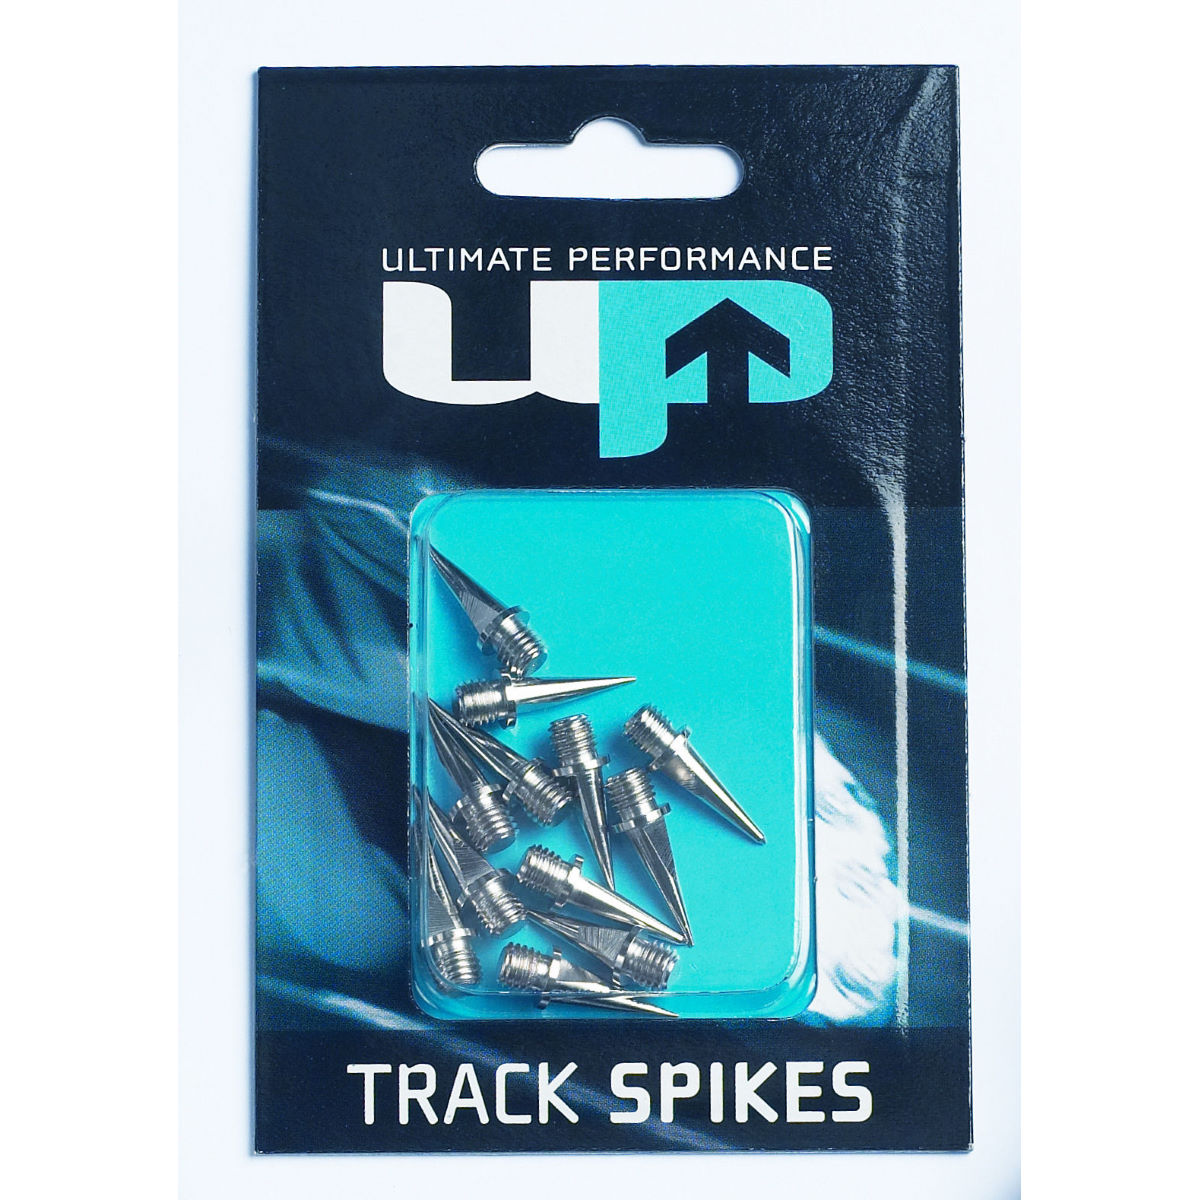 Ultimate Performance Track Spikes - 9mm Grey  Shoe Spares